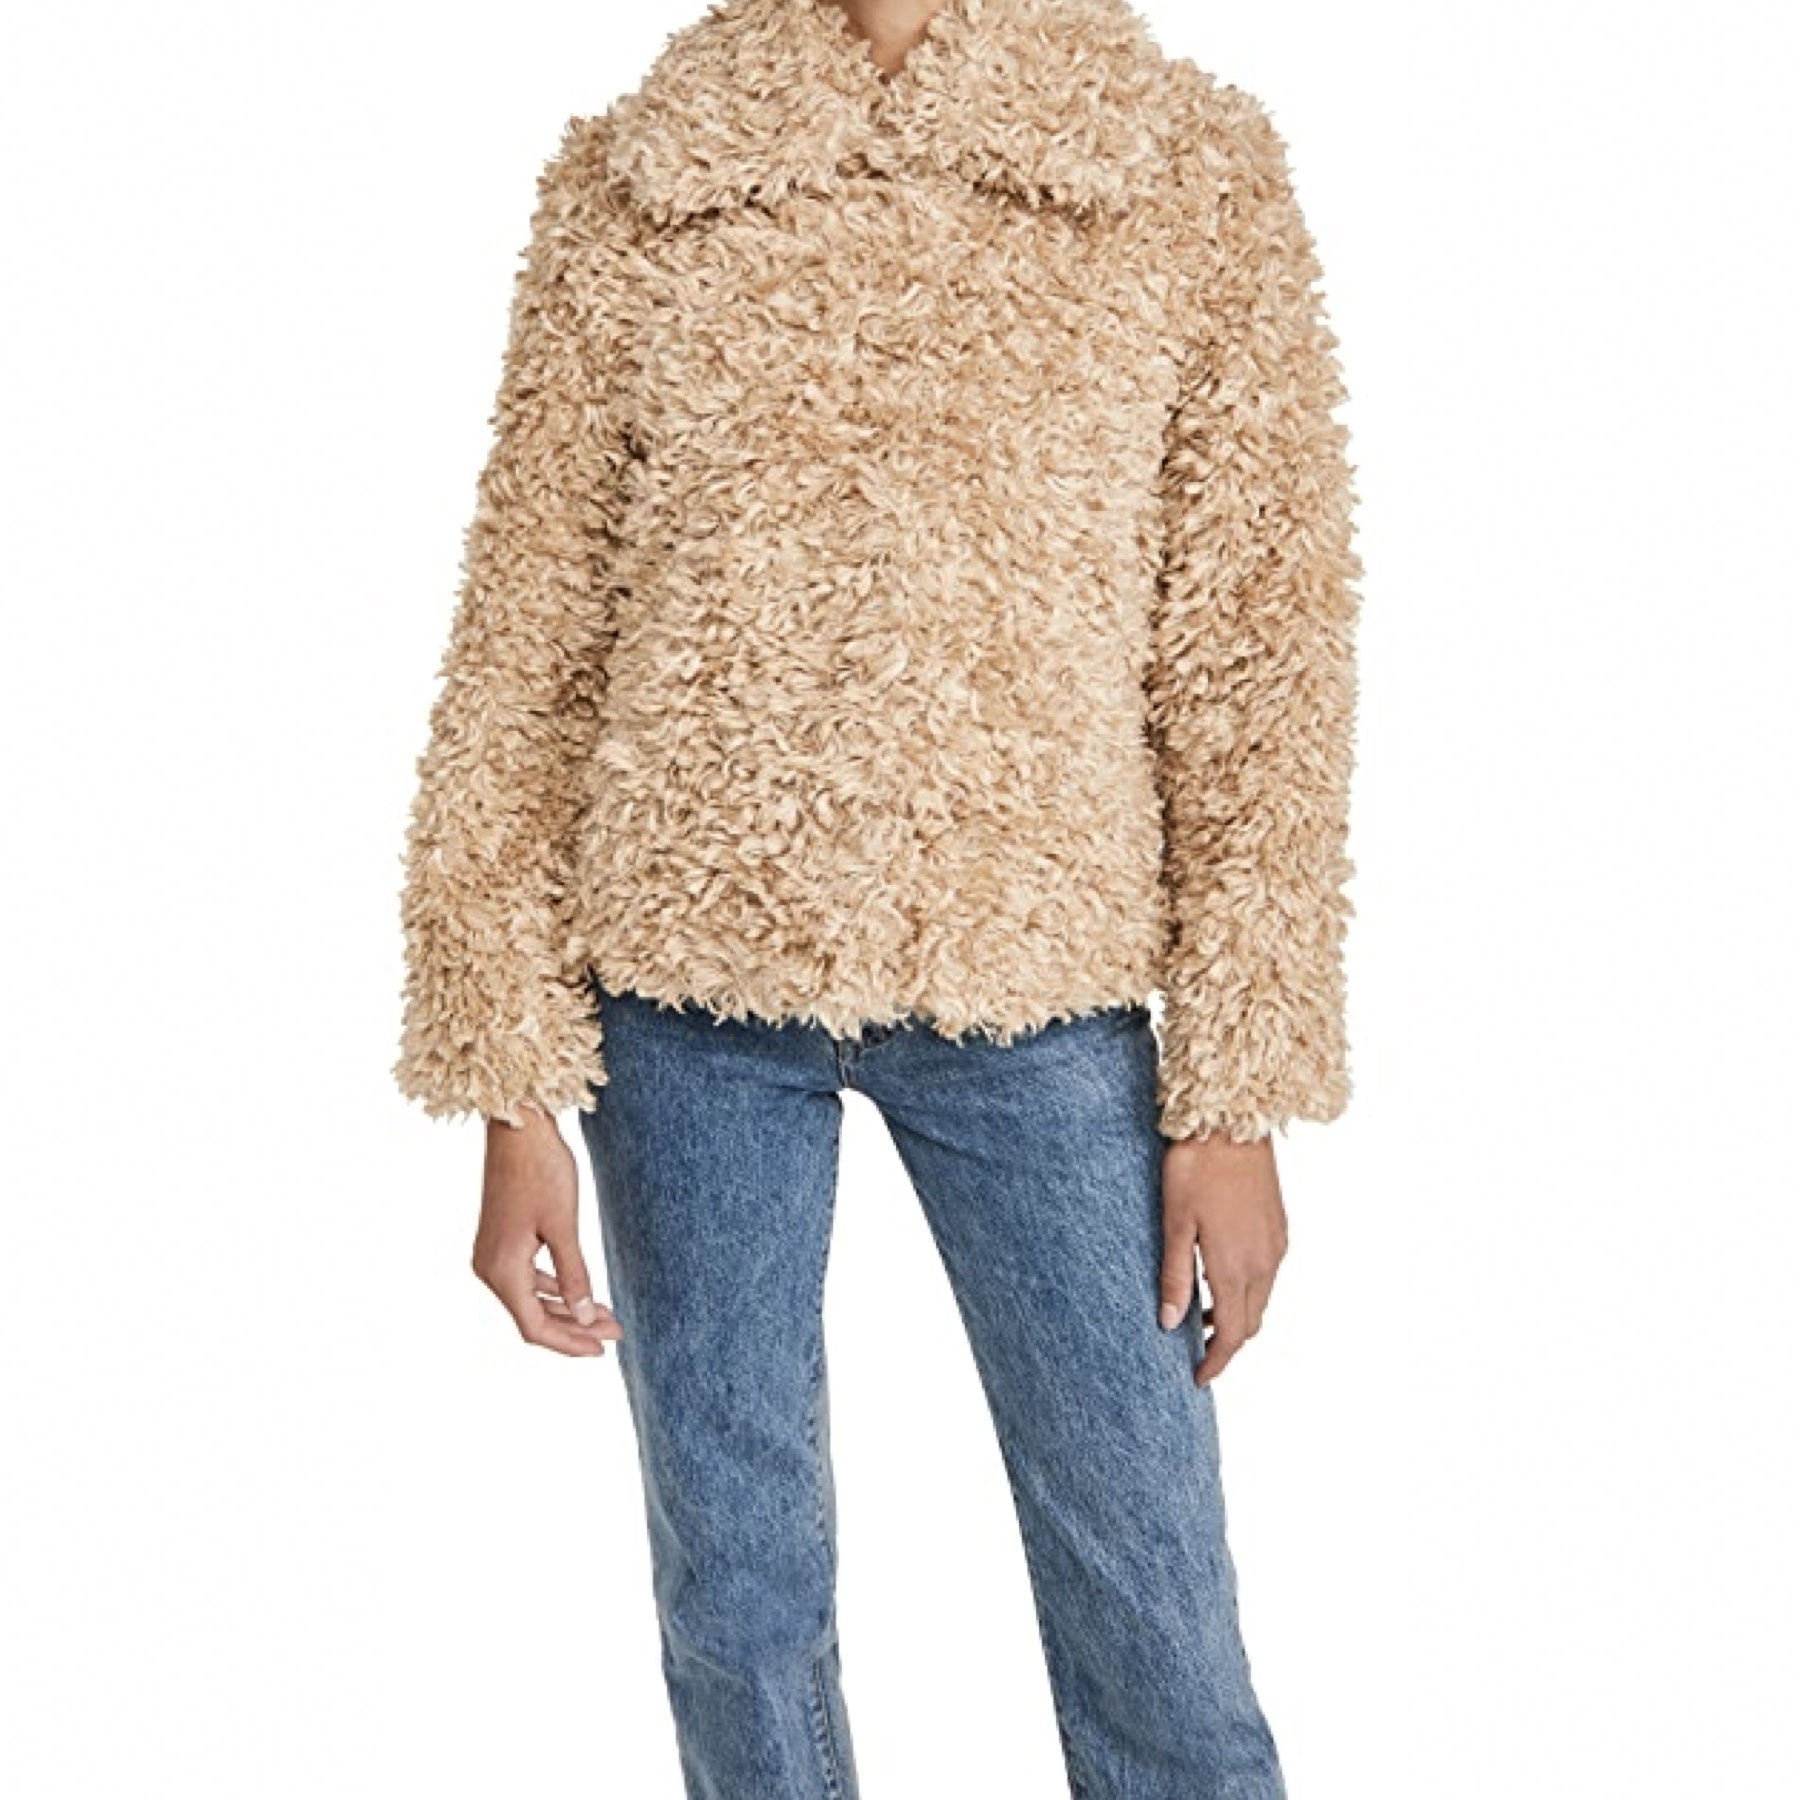 model wearing shaggy beige sweater with jeans